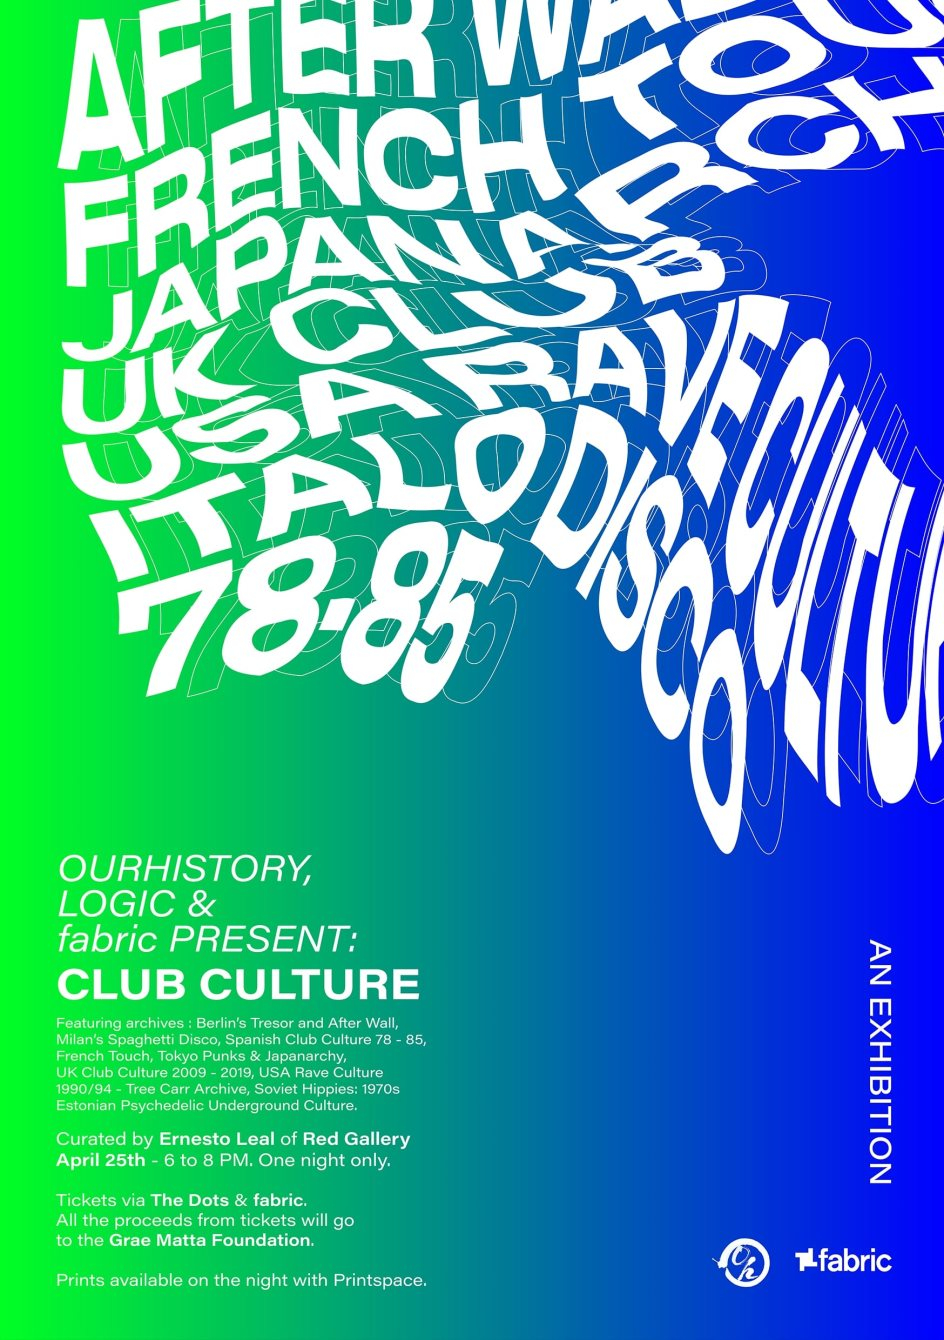 Ourhistory Archives, Logic & fabric present: Club Culture - Flyer back